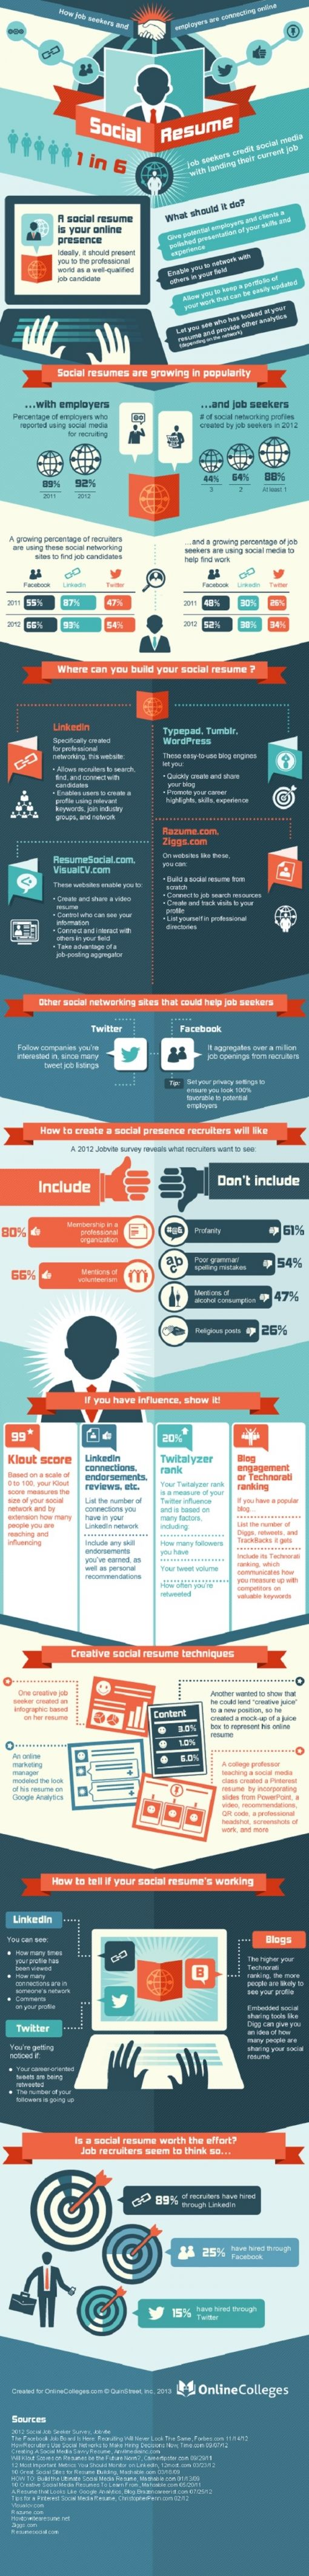 374230-infographic-social-resume